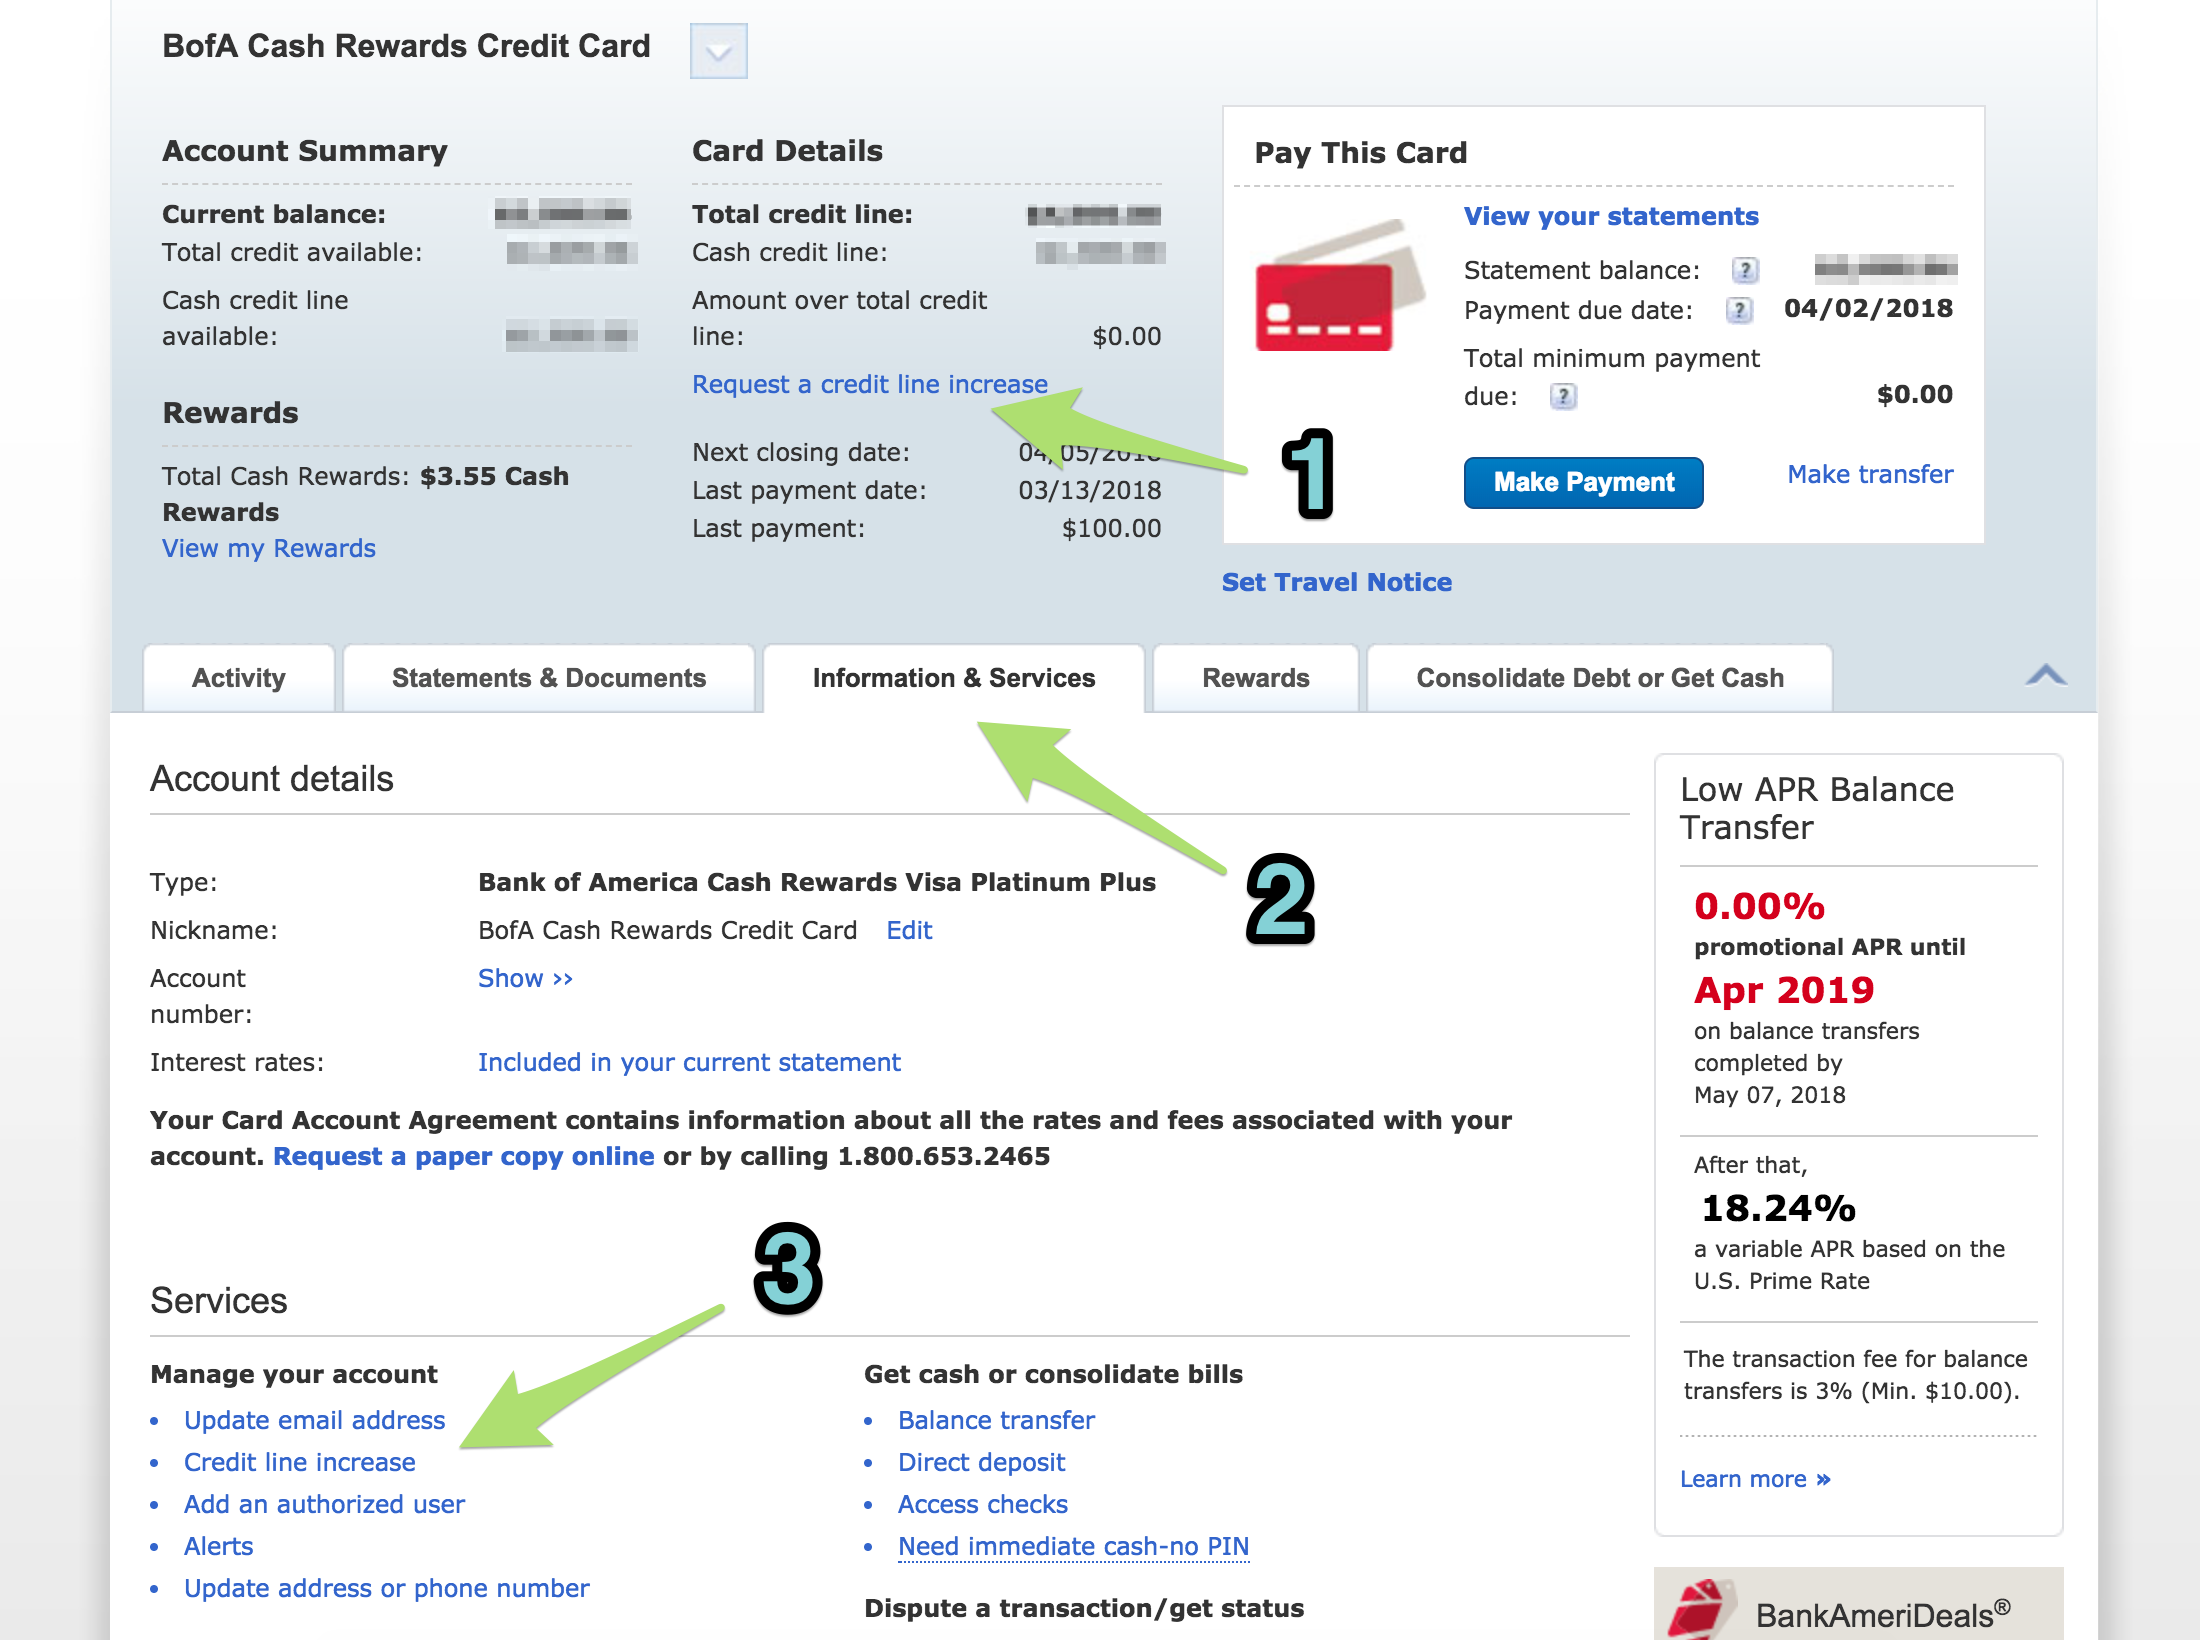 Requesting a credit line increase online with Bank of America